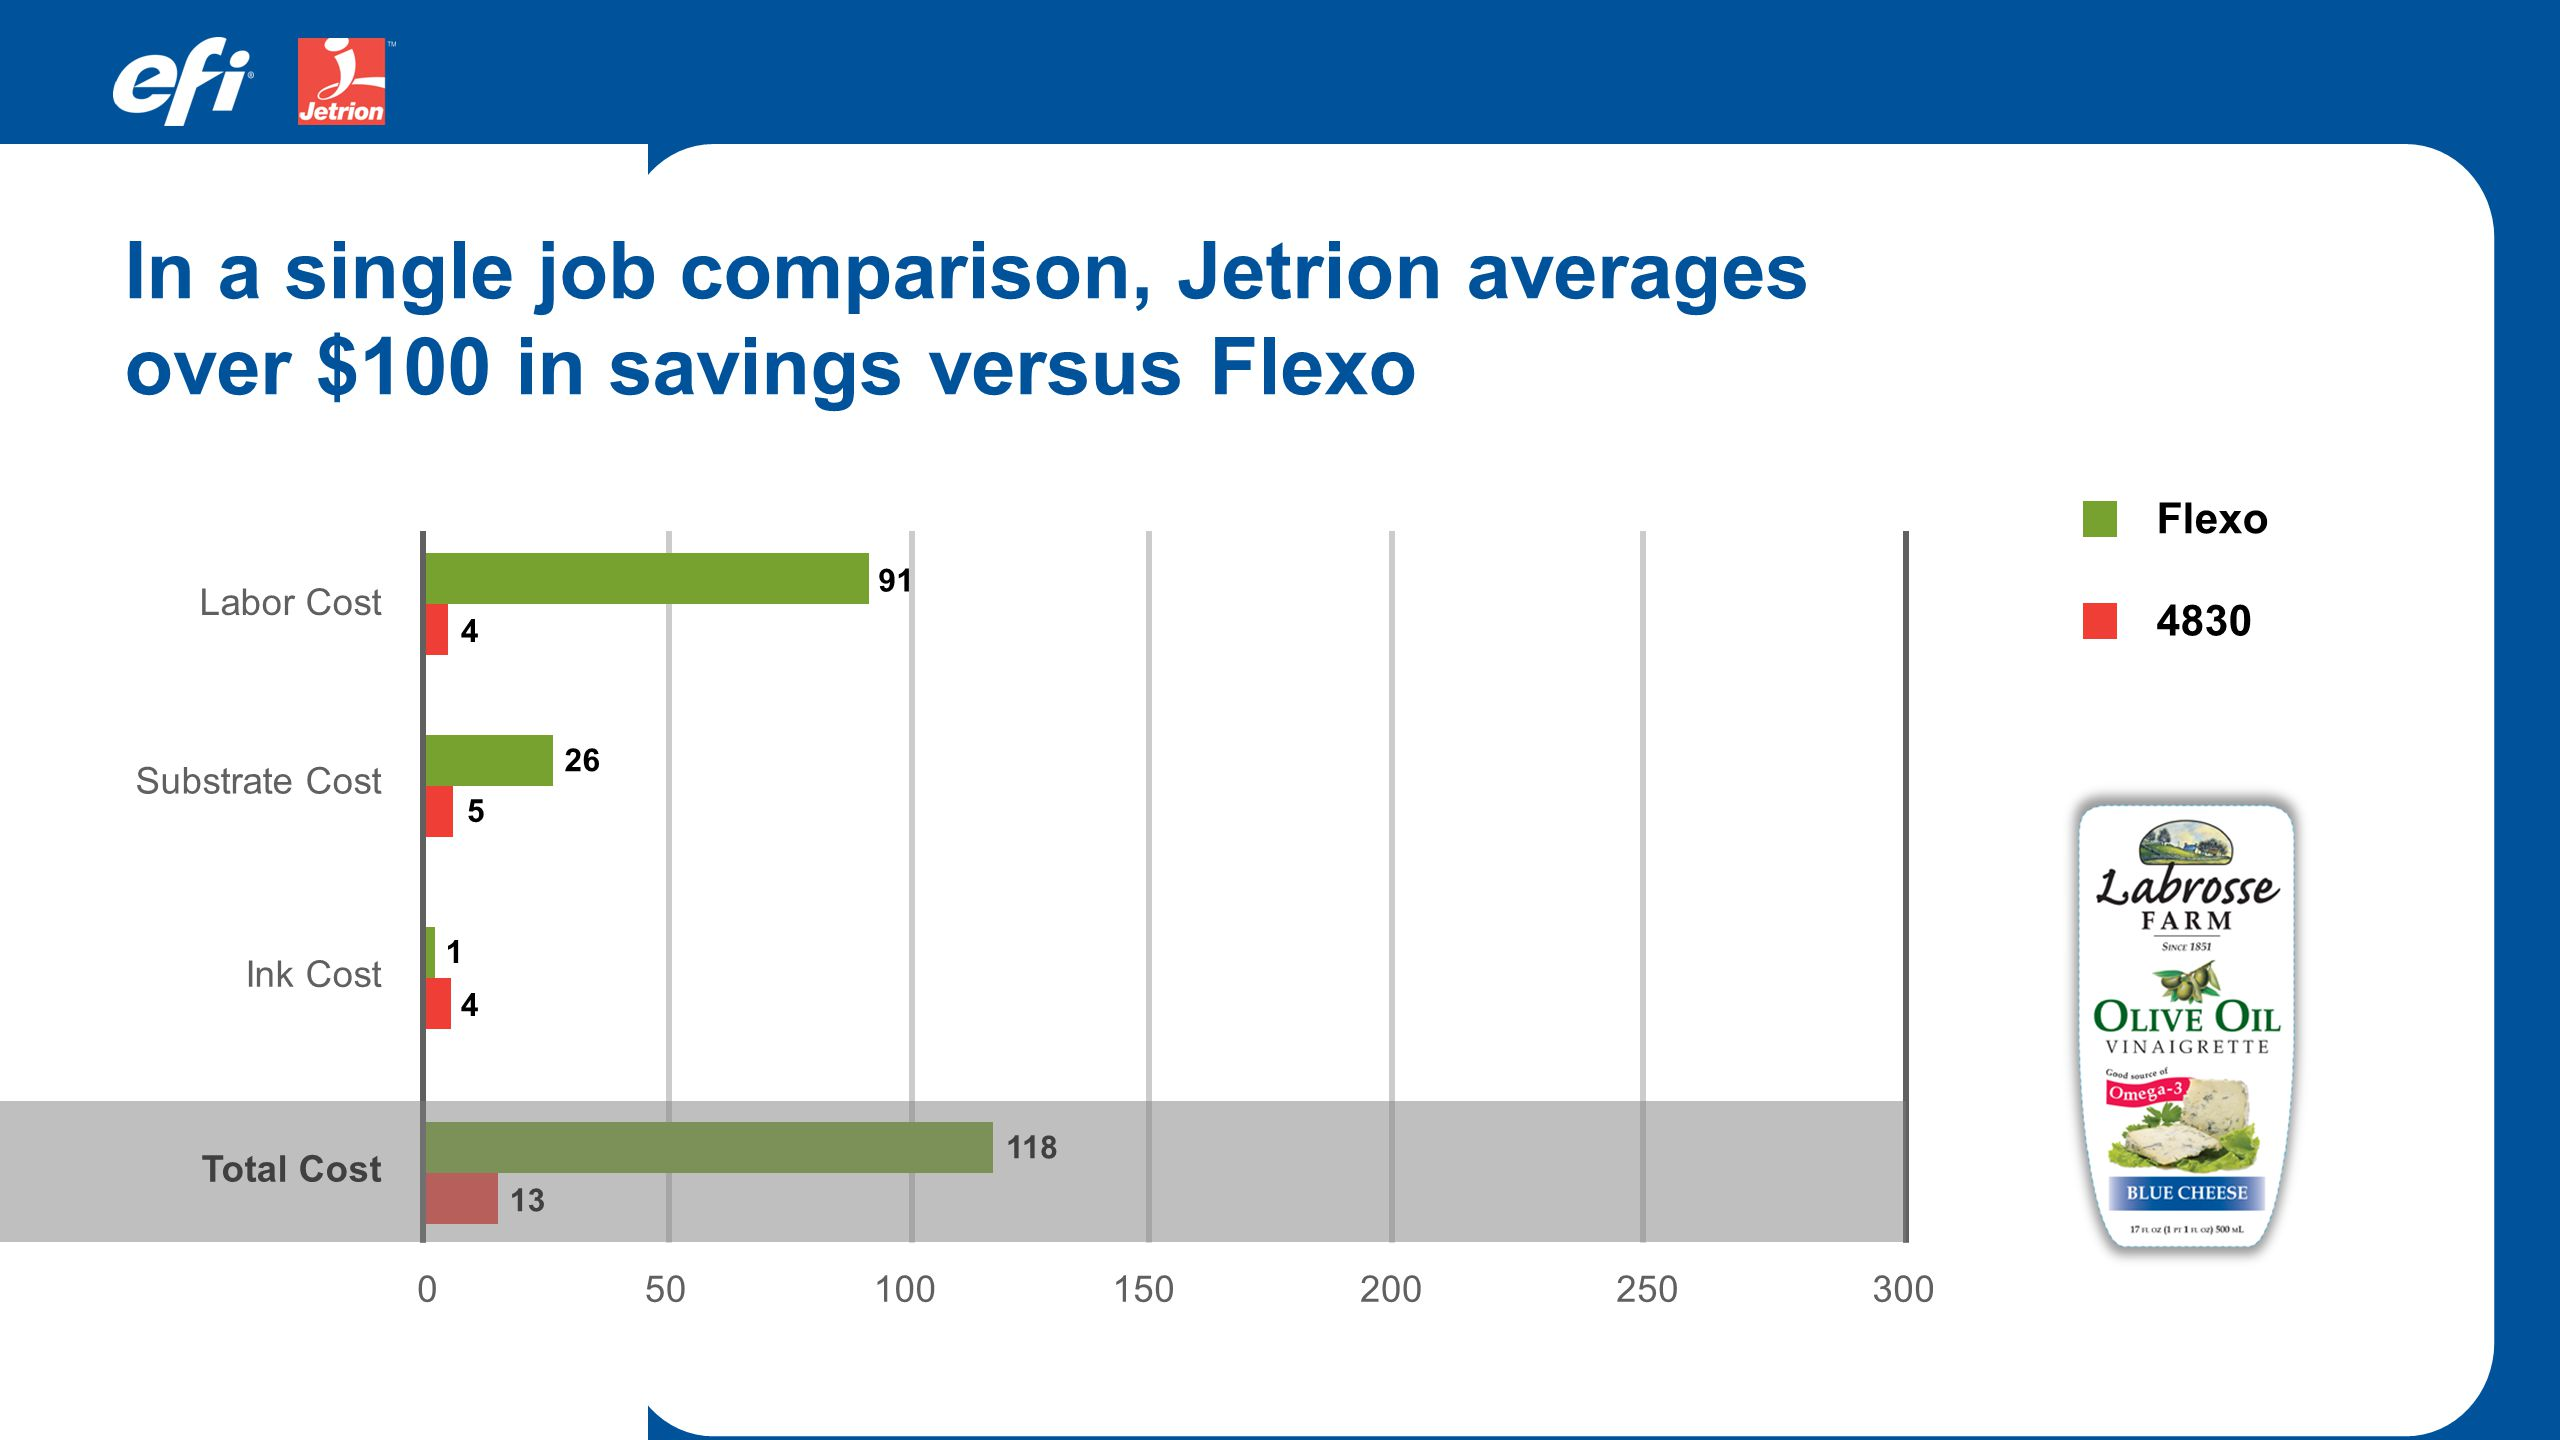 500100150200250300 Labor Cost Substrate Cost Ink Cost Total Cost In a single job comparison, Jetrion averages over $100 in savings versus Flexo 4830 F